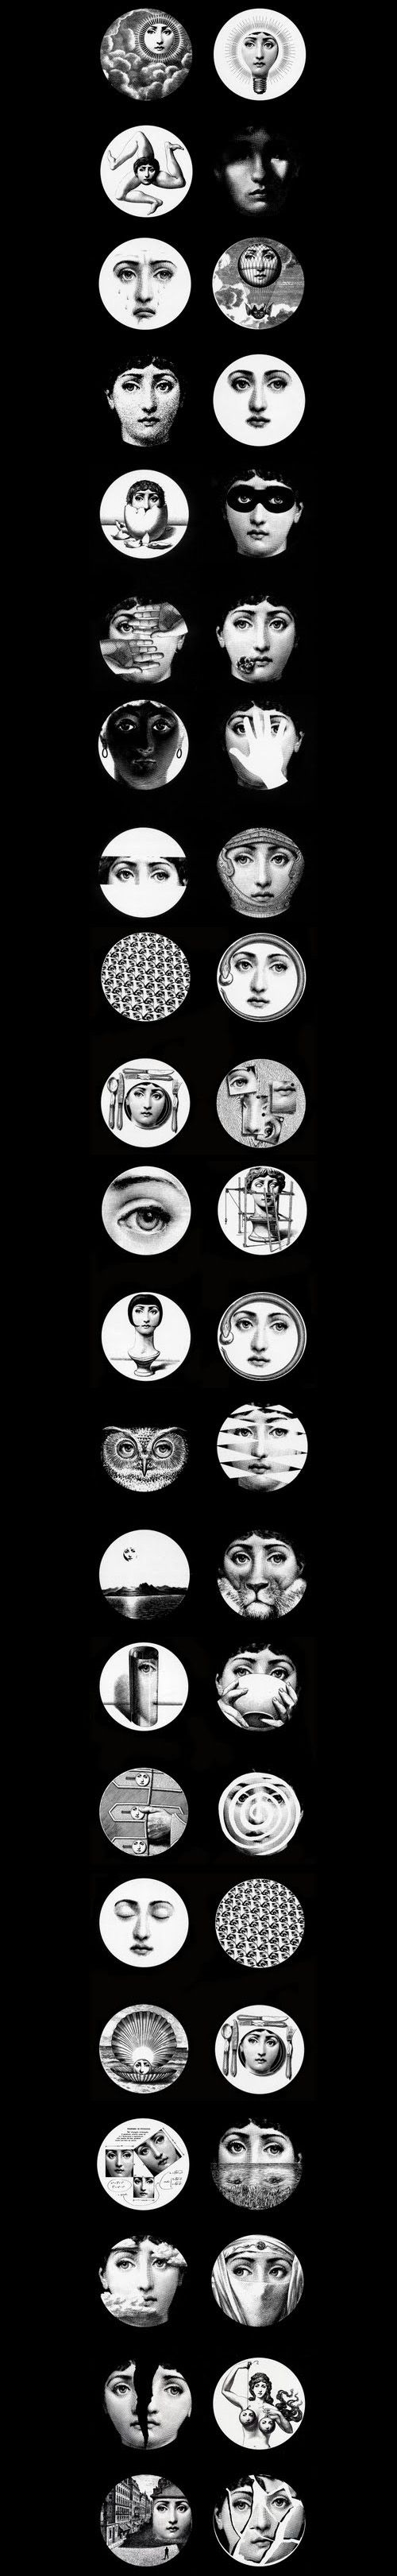 Piero-Fornasetti - one of my all-time favorite artists!